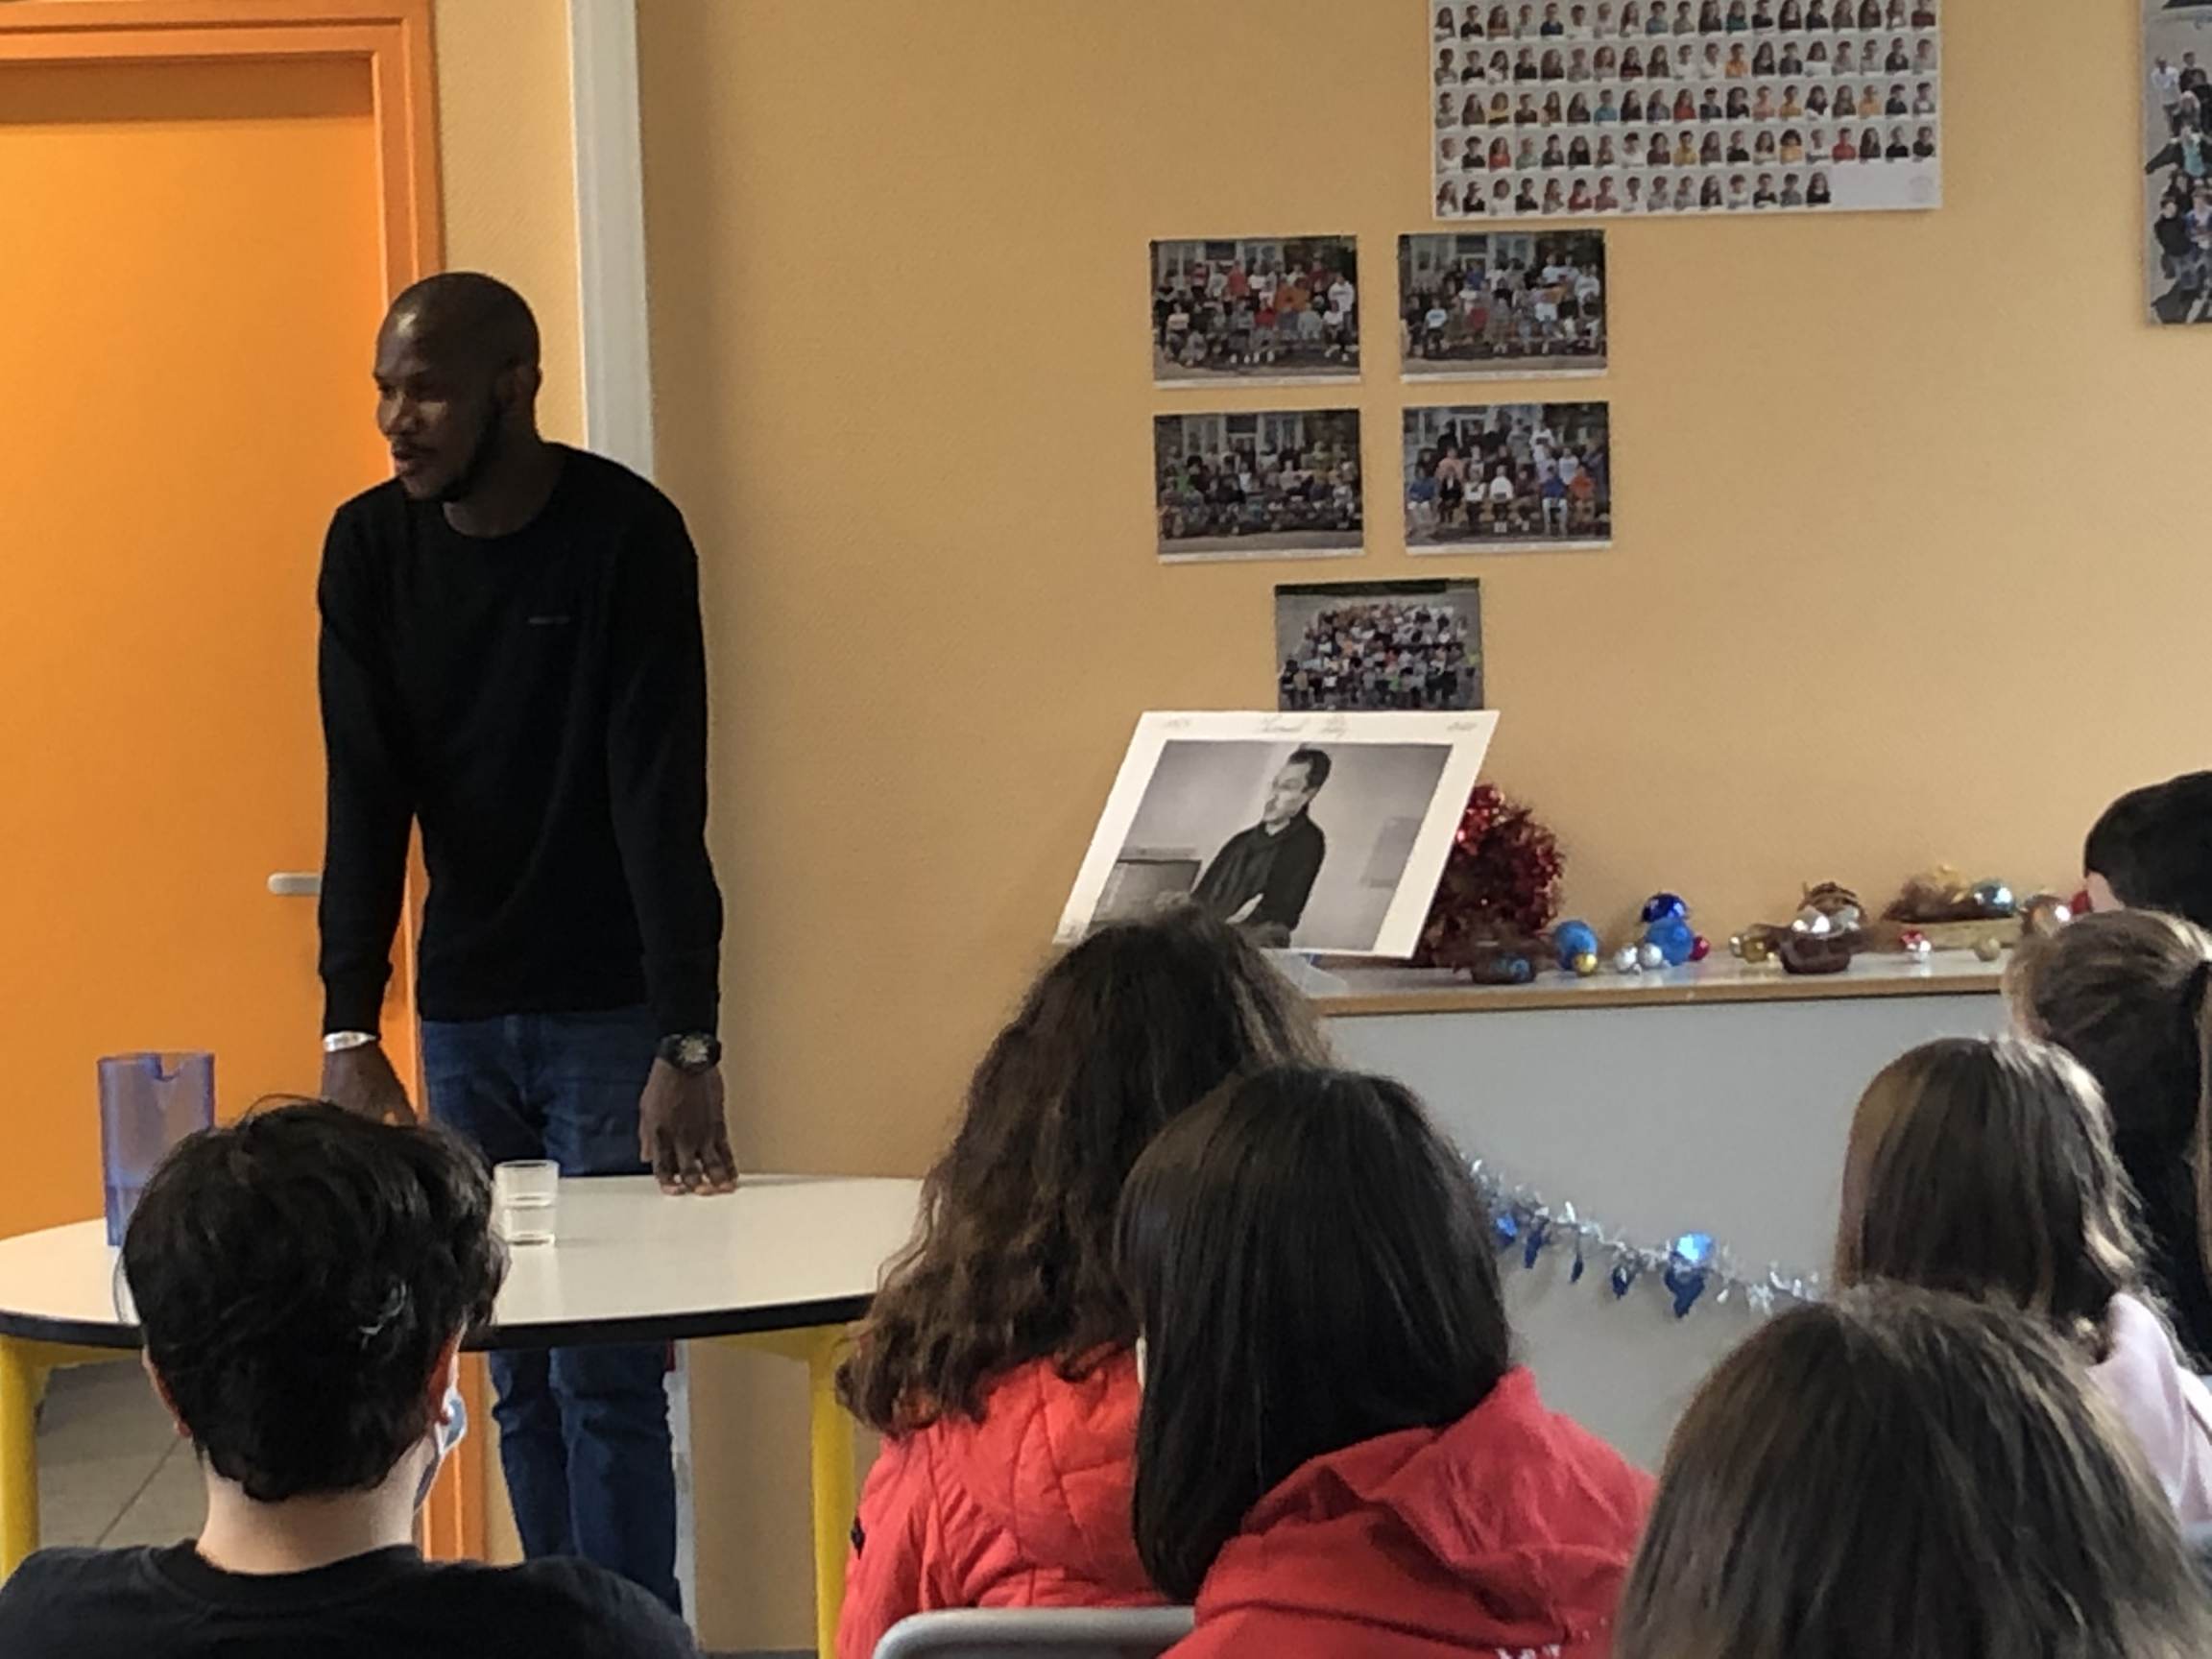 Lassana Bathily speaks to a group of students at Francois Charles Middle School in Plougasnou, France, Dec. 11, 2020.